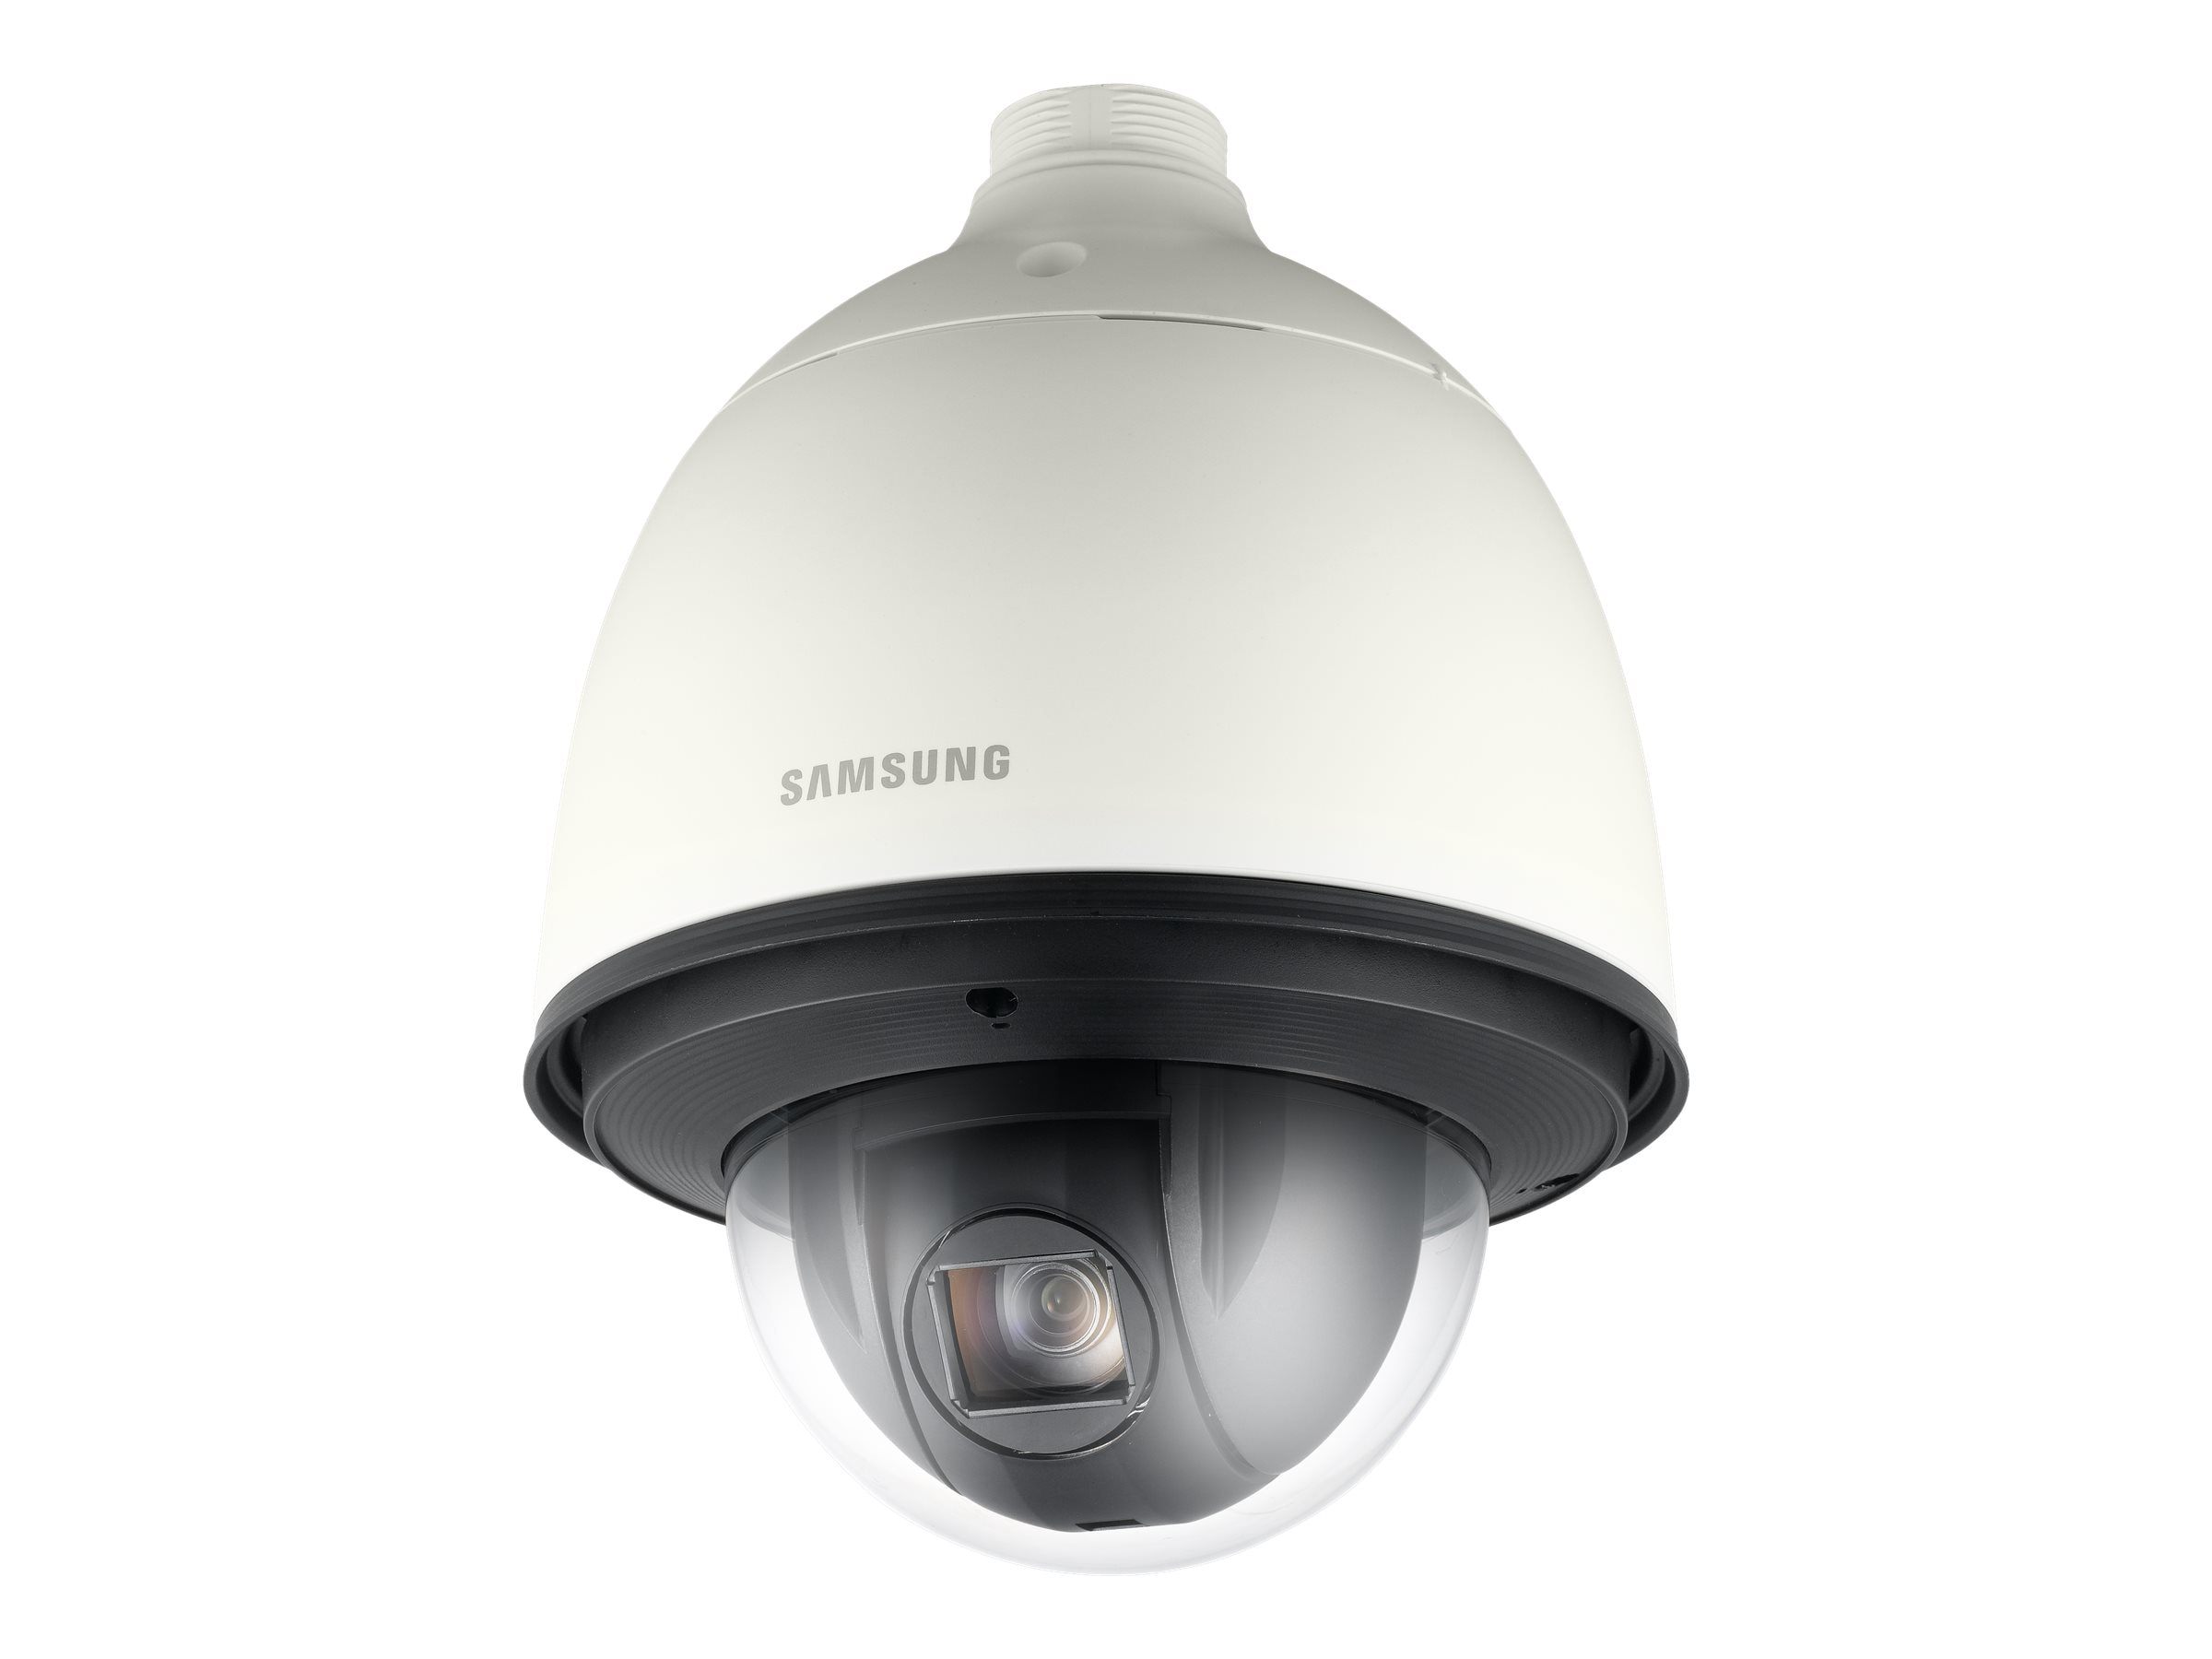 Samsung 1.3MP HD 23x Network PTZ Dome Camera